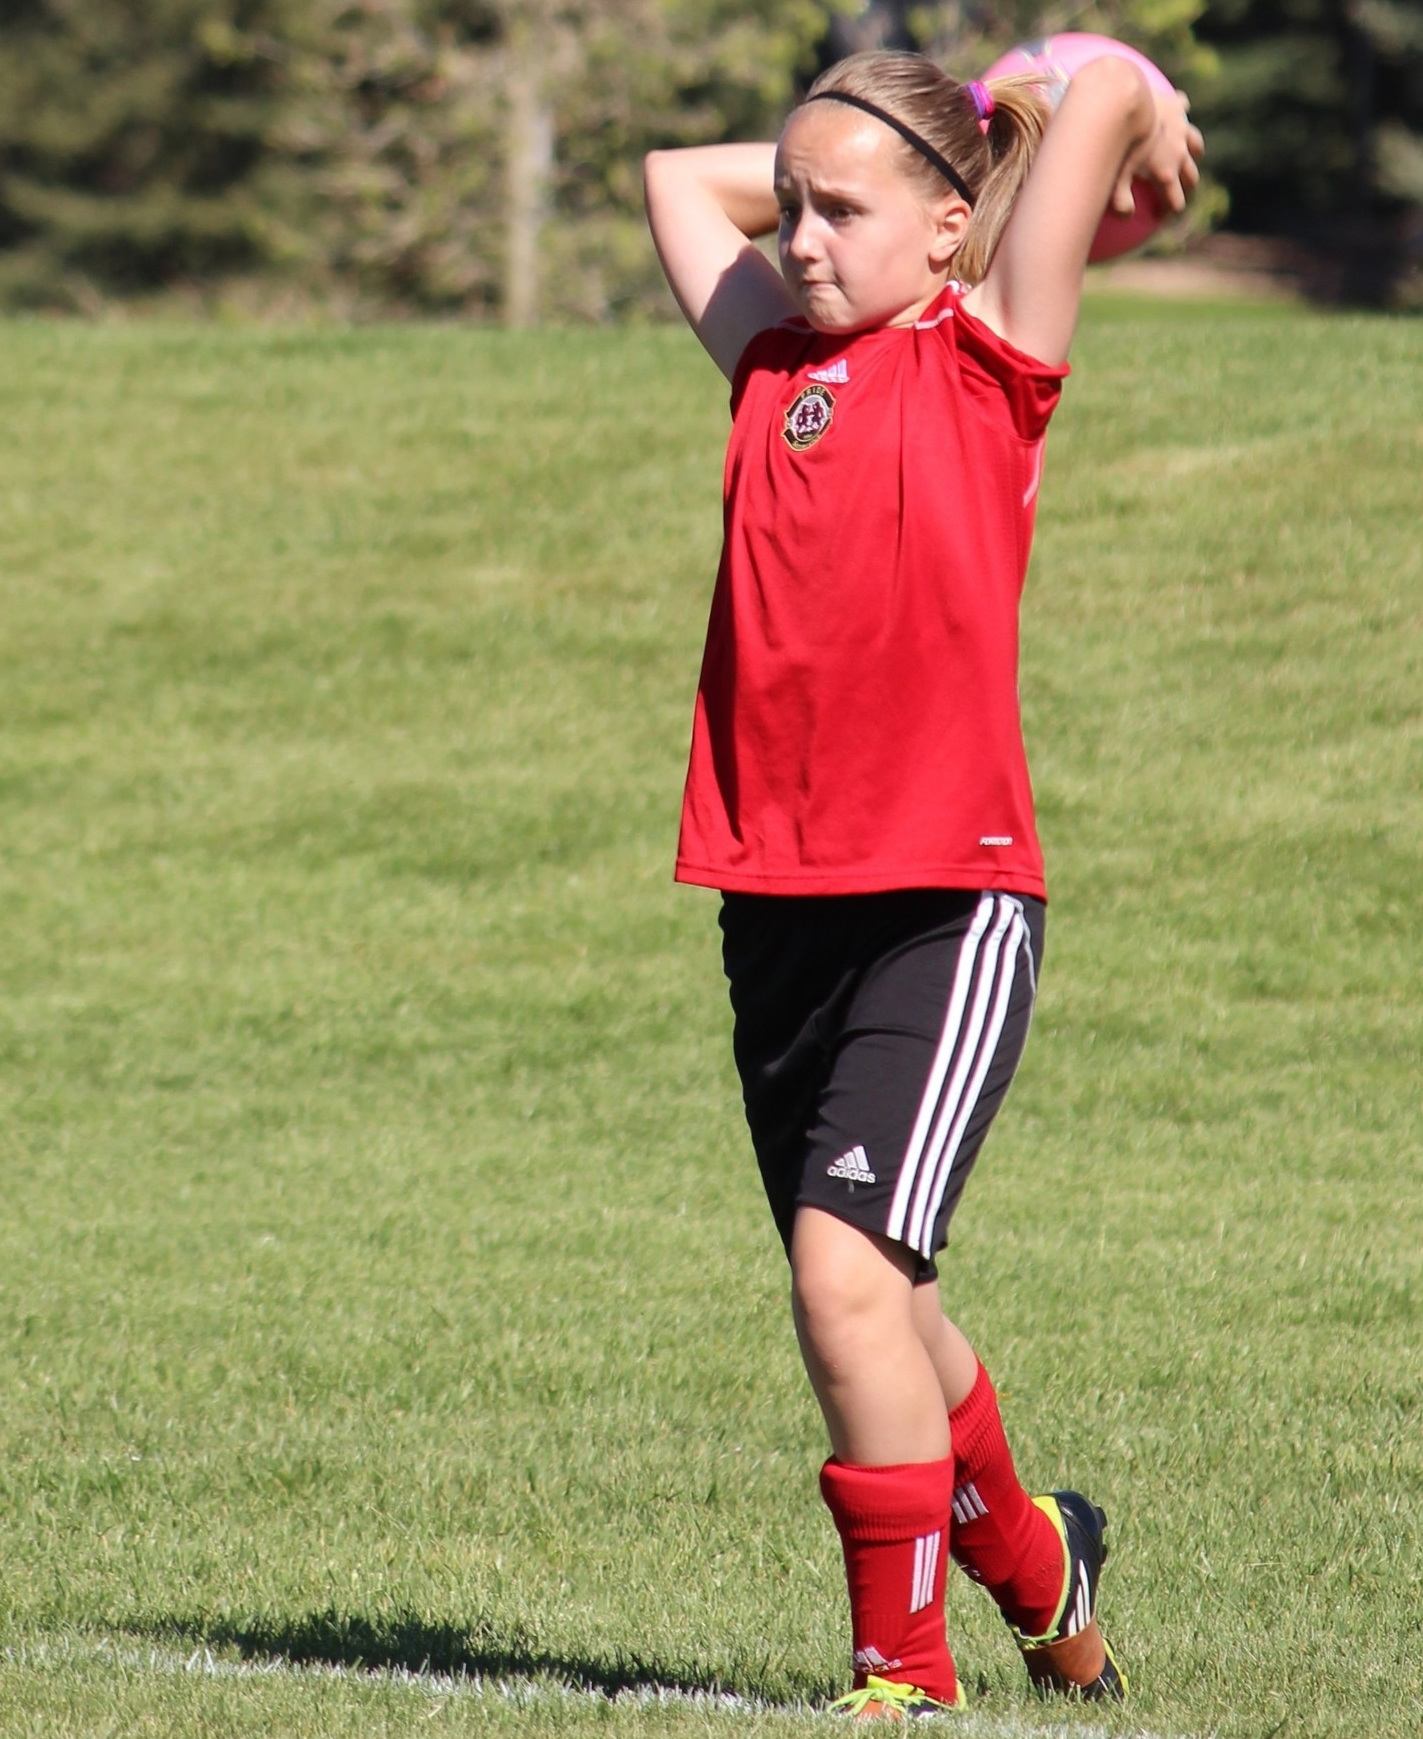 former preemie Taylor is a NICU success story! Here she is playing soccer